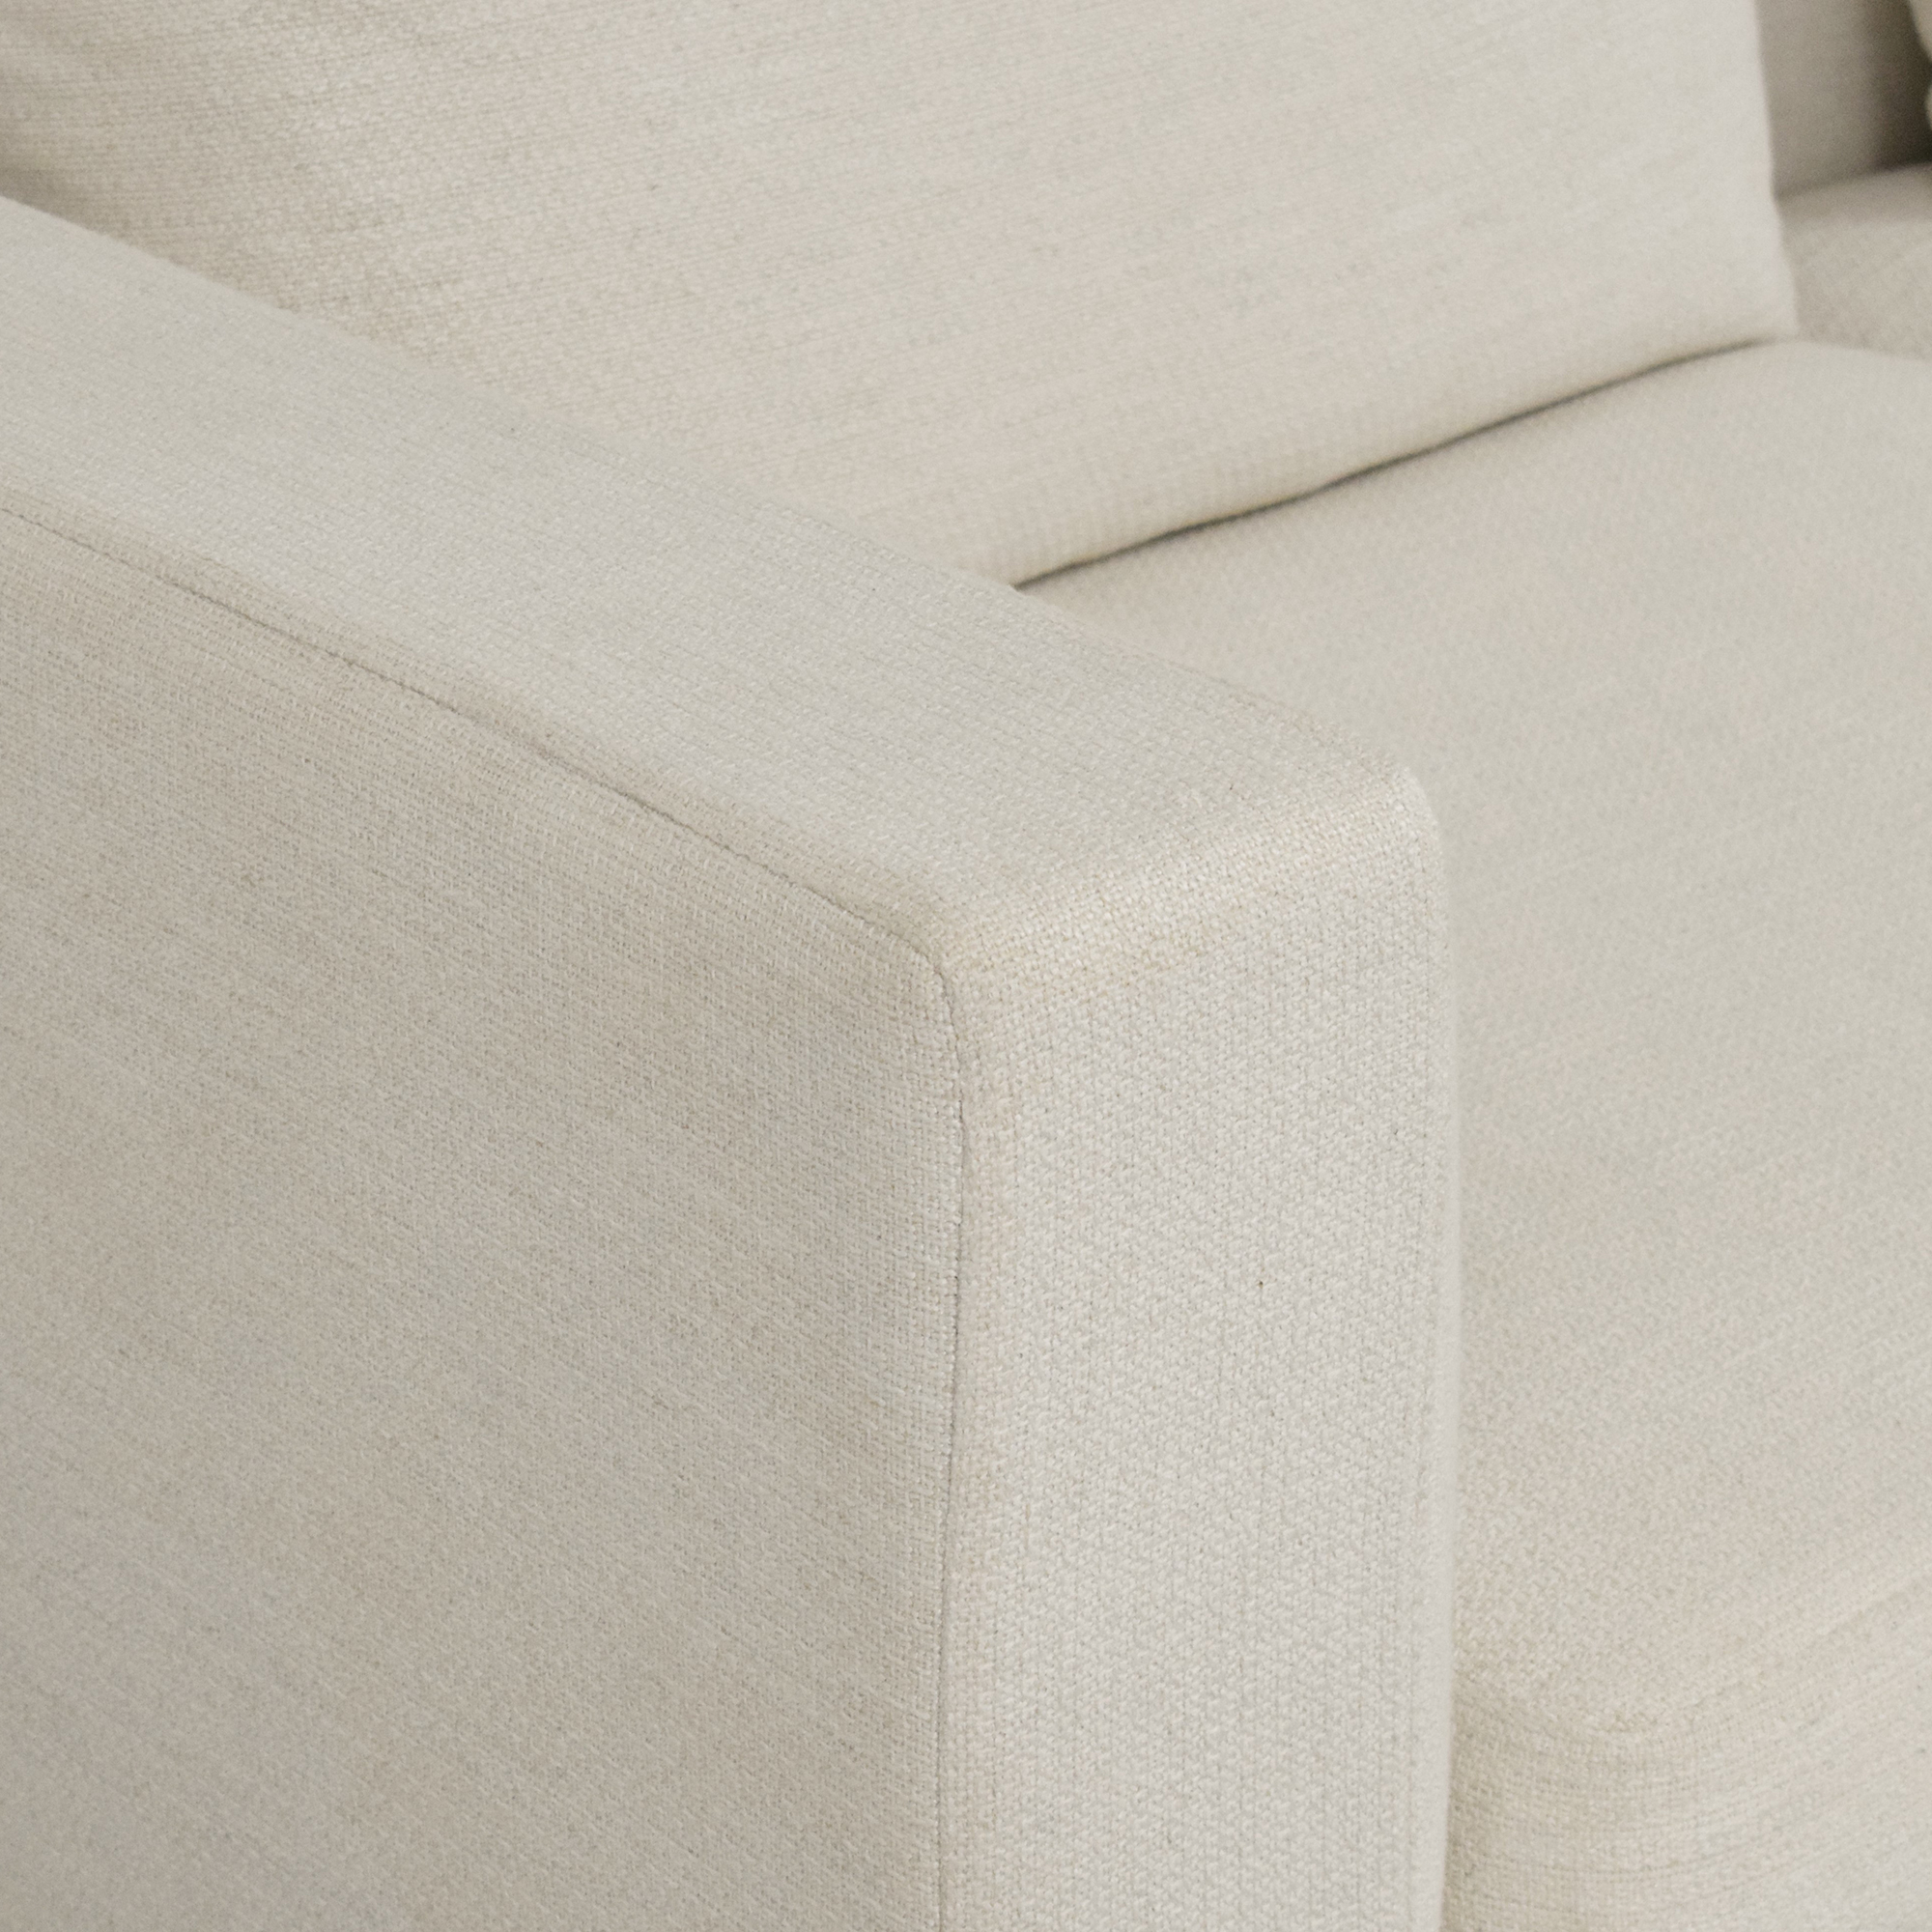 Camerich Camerich Freetown Sectional Sofa with Ottoman nyc